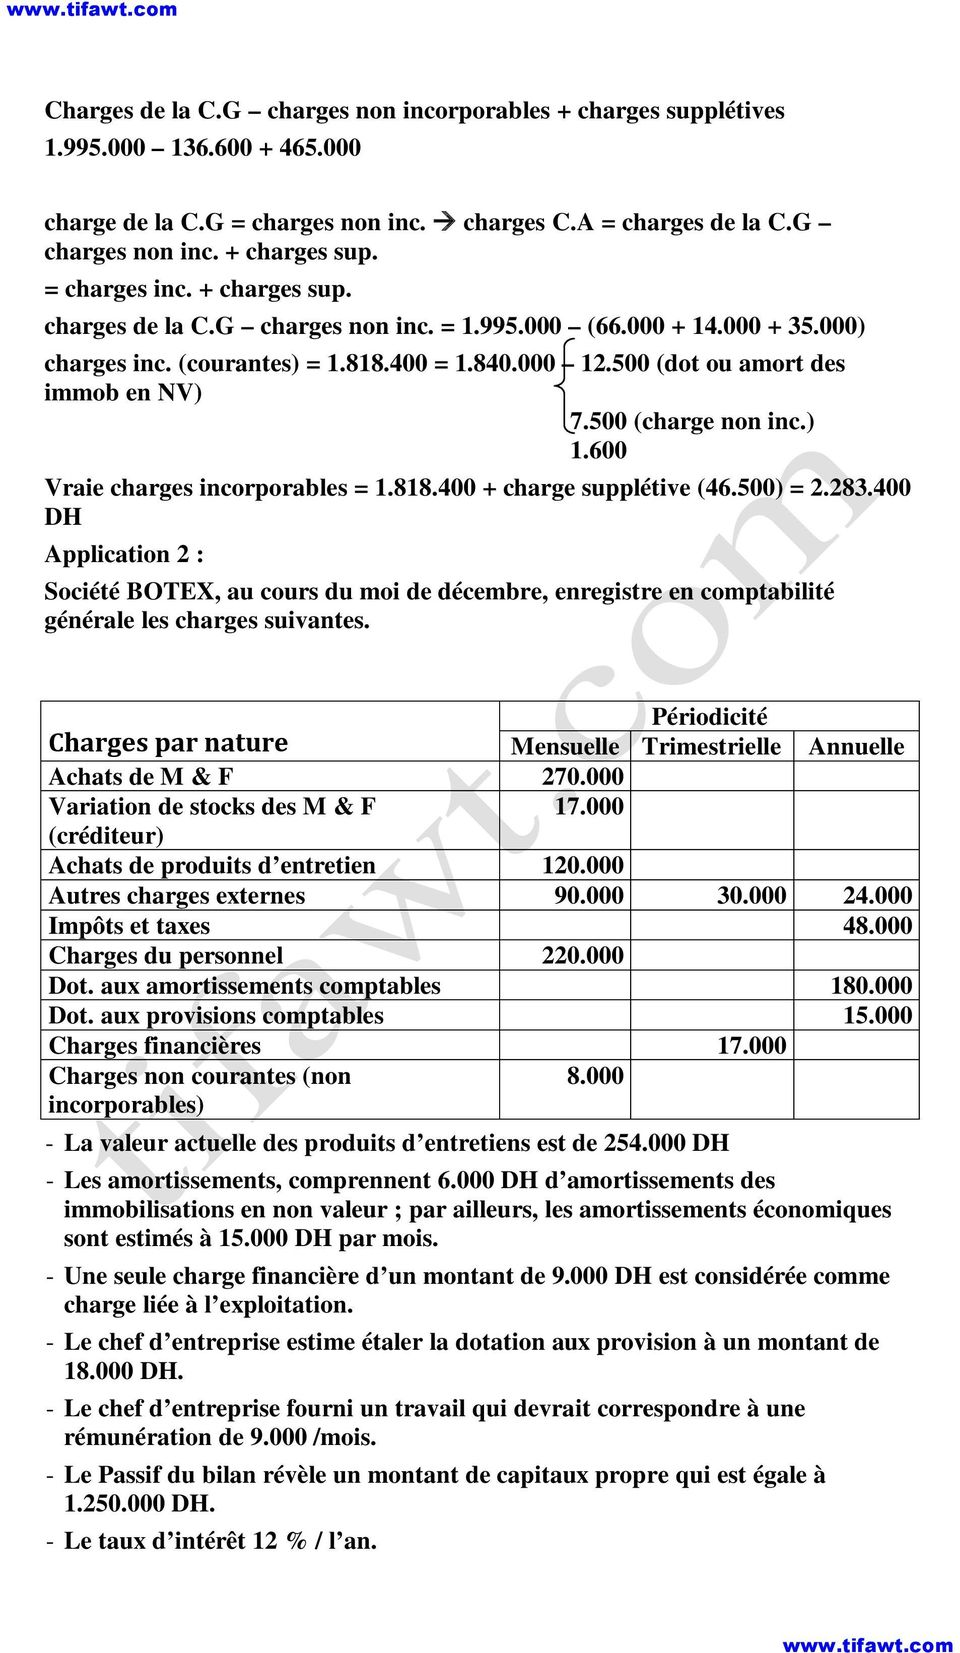 ) 1.600 Vraie charges incorporables = 1.818.400 + charge supplétive (46.500) = 2.283.